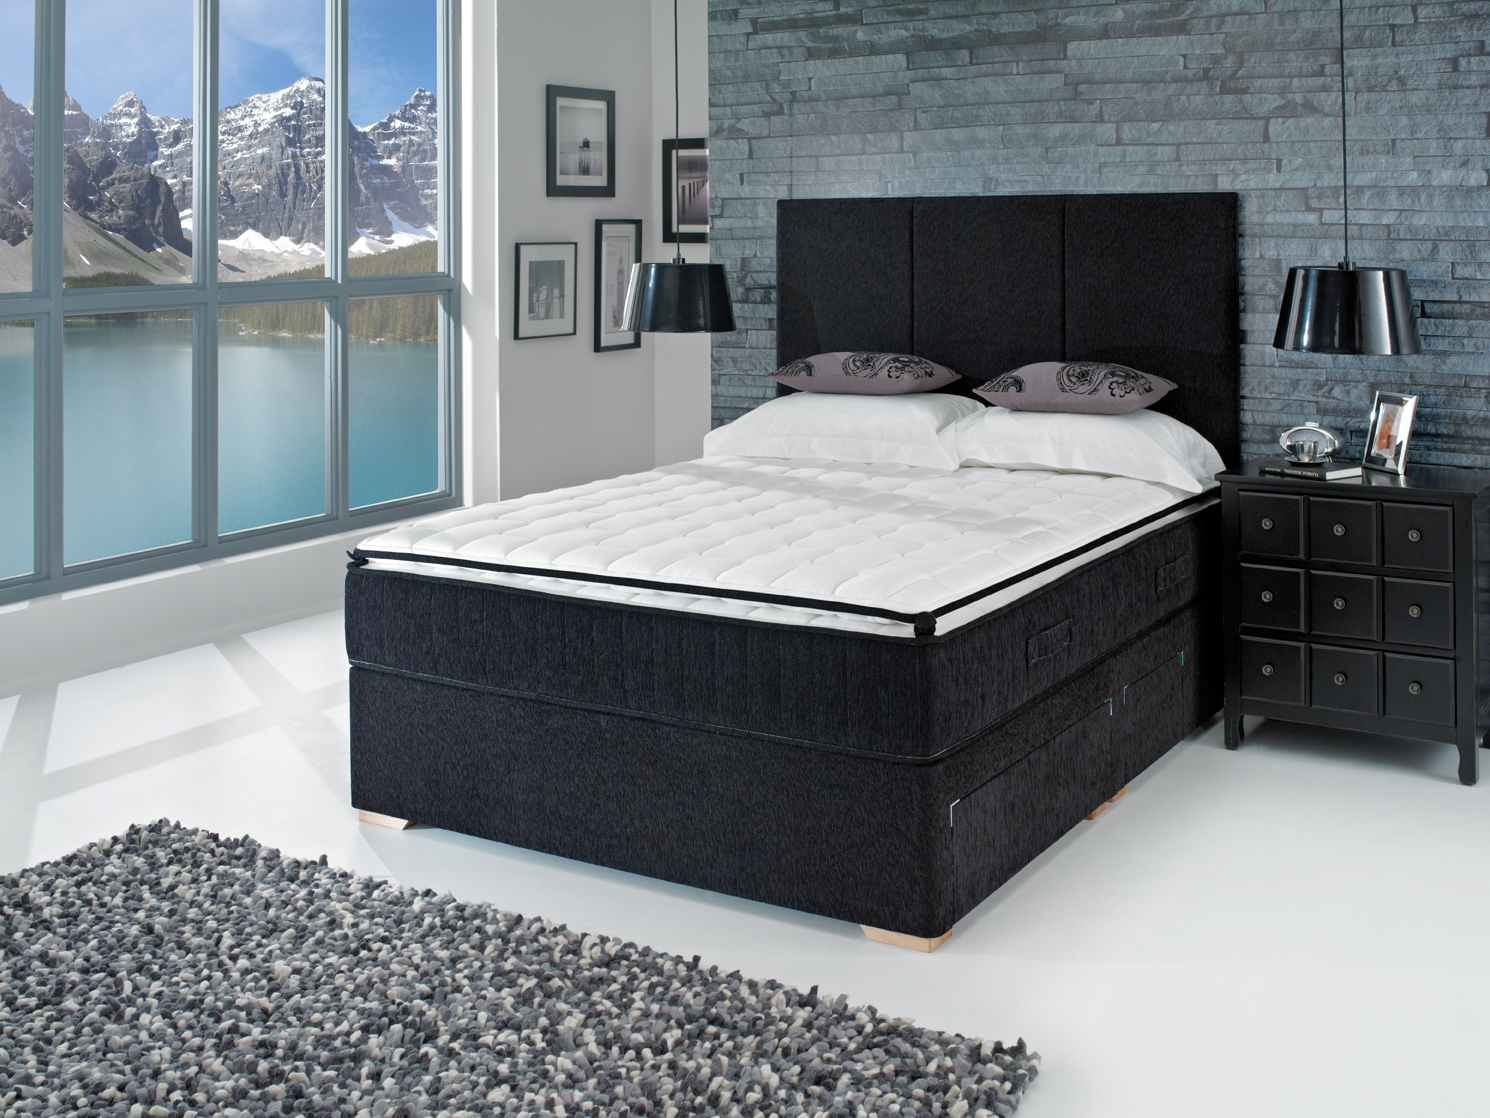 Kaymed beds in surrey